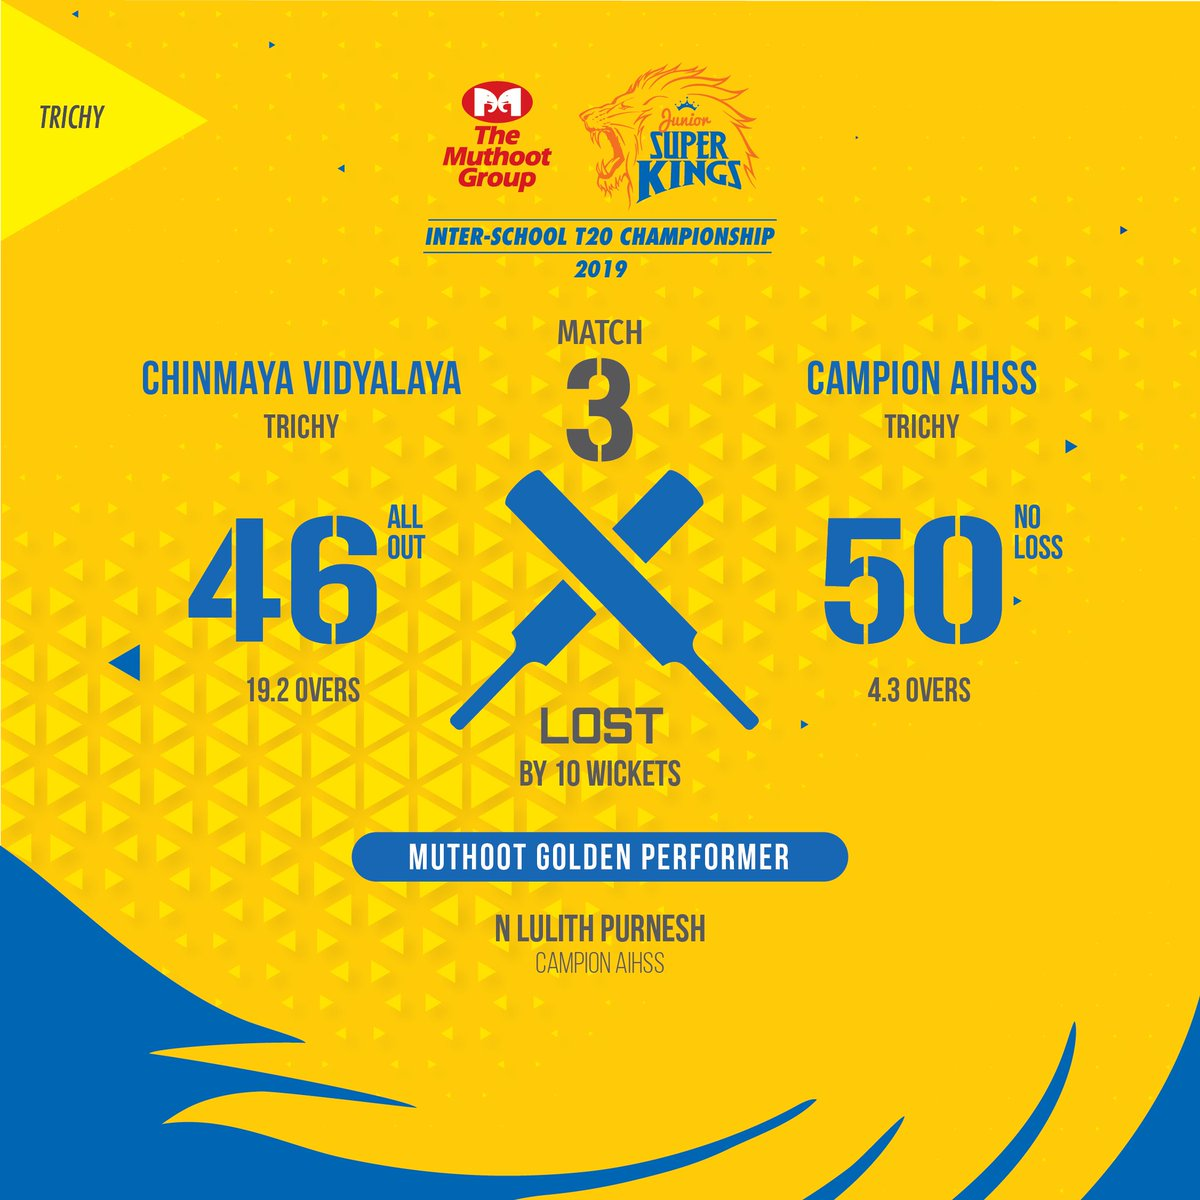 Chennai Super Kings (@ChennaiIPL) | Twitter